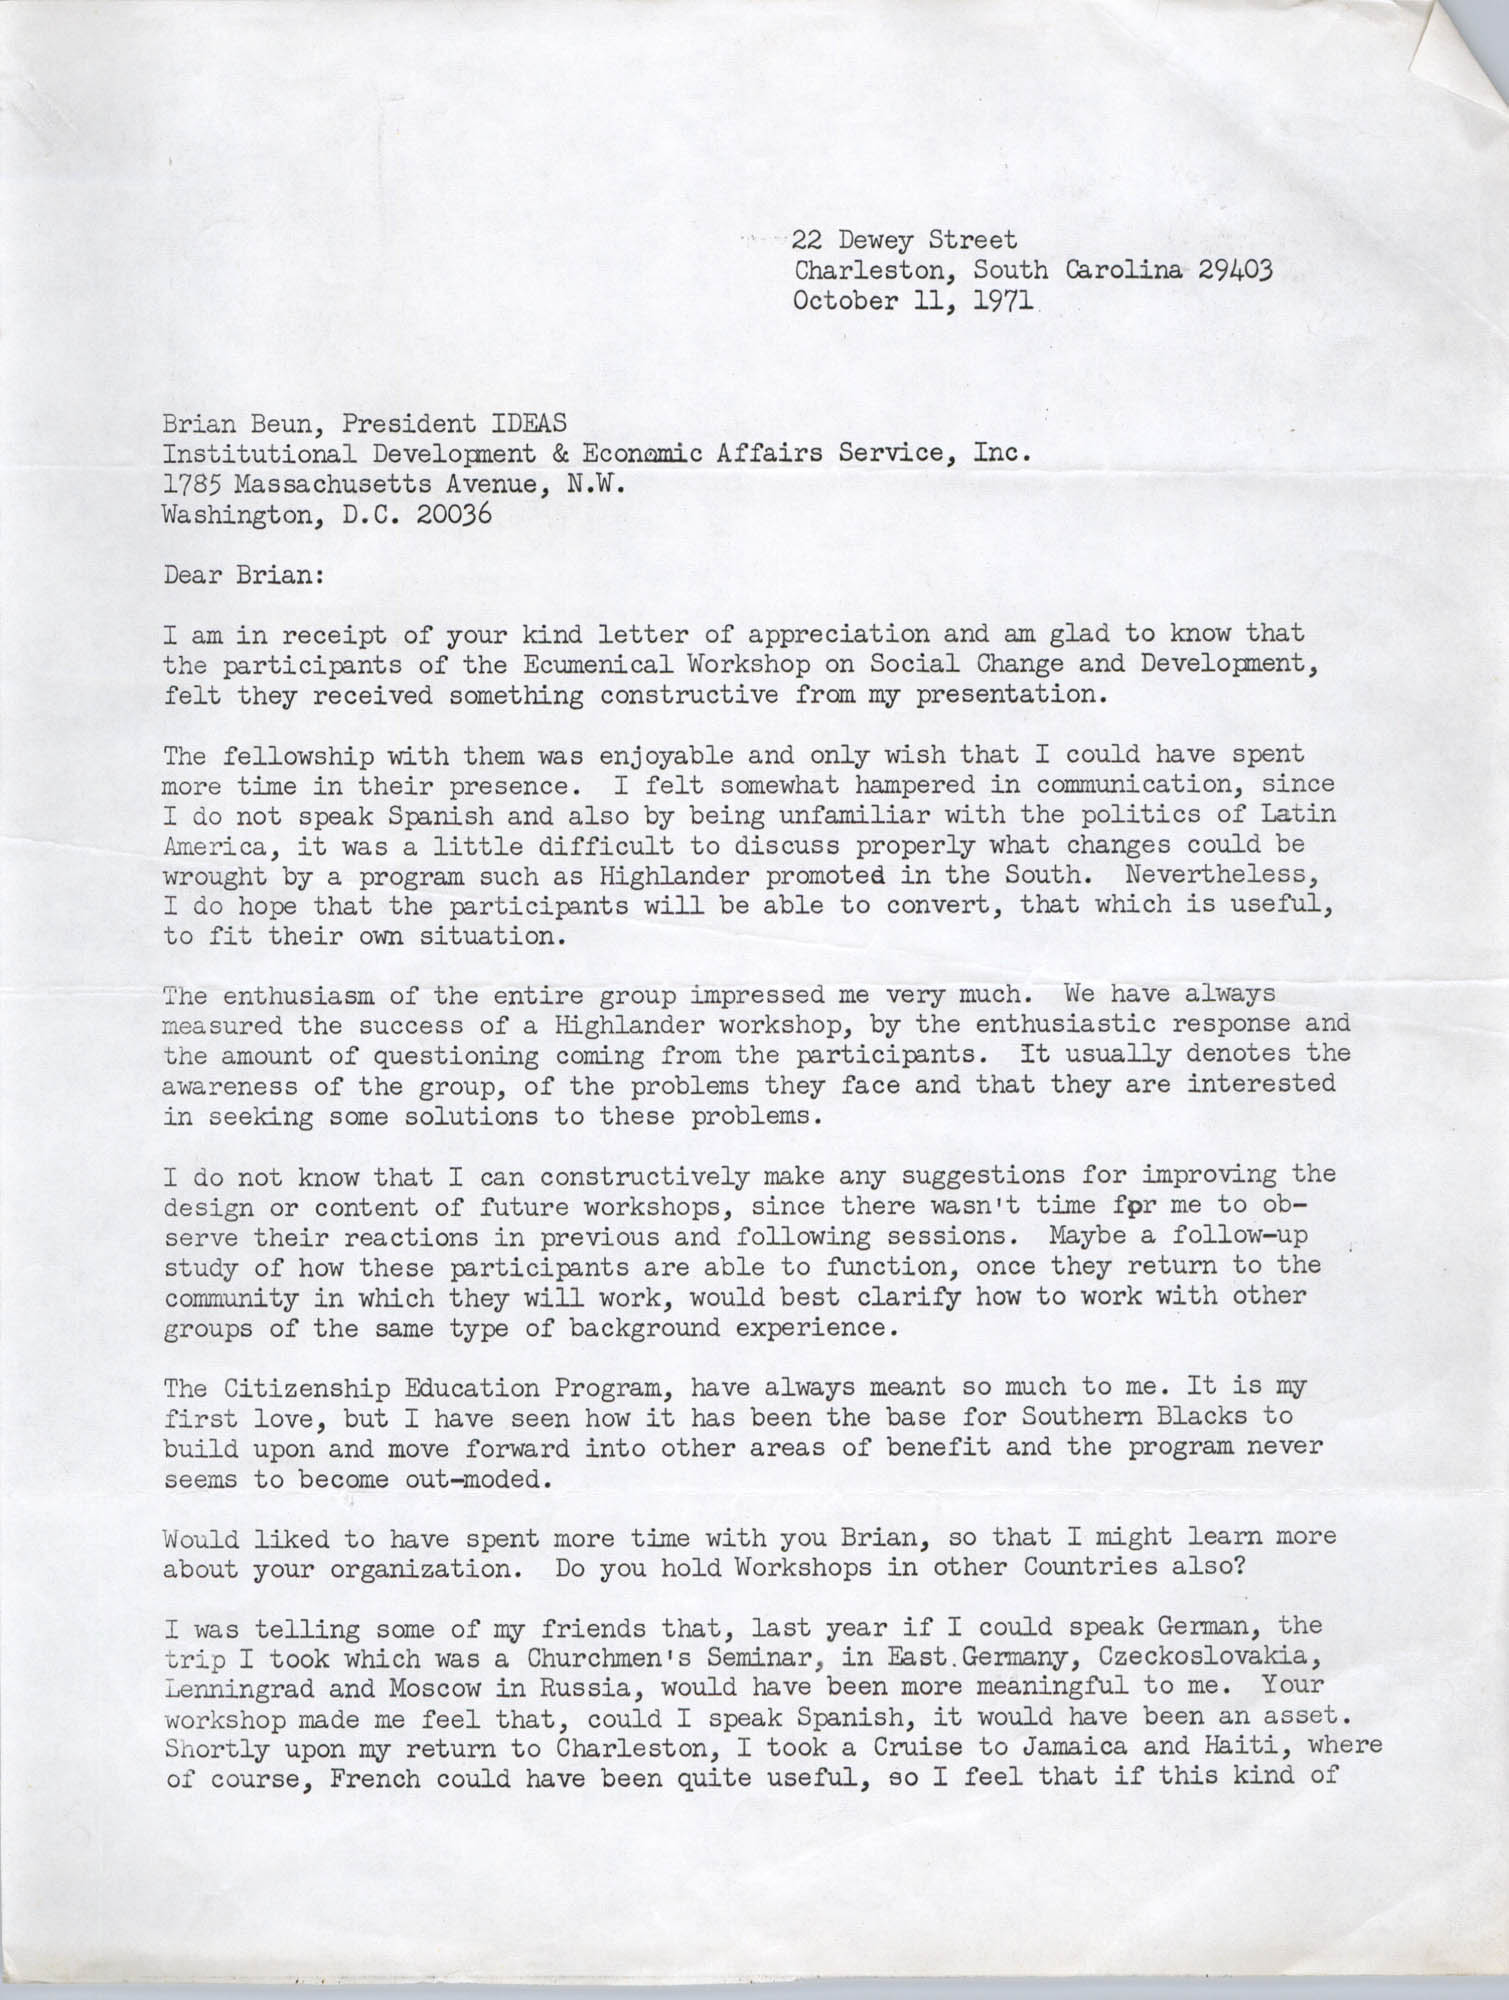 Letter from Bernice Robinson to Brian Beun, October 11, 1971